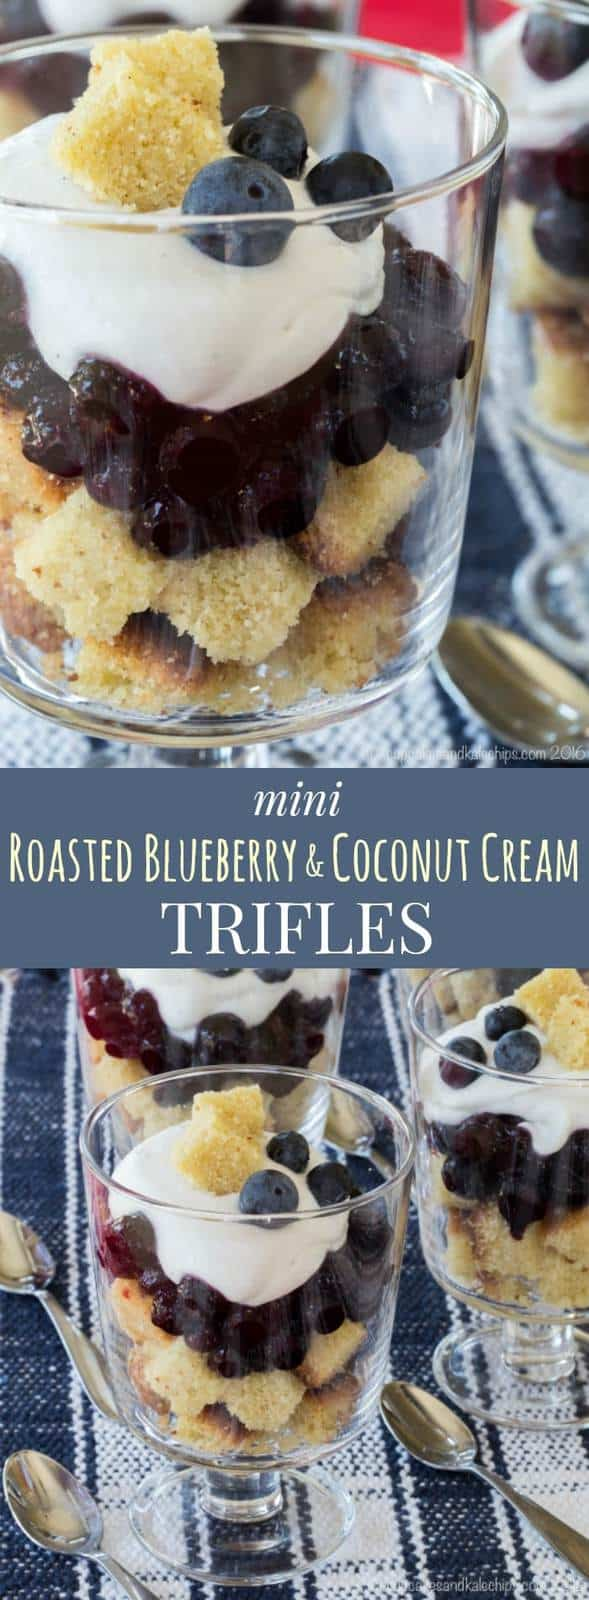 Mini Roasted Blueberry and Coconut Cream Trifles - a little individual trifle is a simple dessert recipe that's sure to impress. Use homemade or storebought pound cake, or even this gluten free option. | cupcakesandkalechips.com